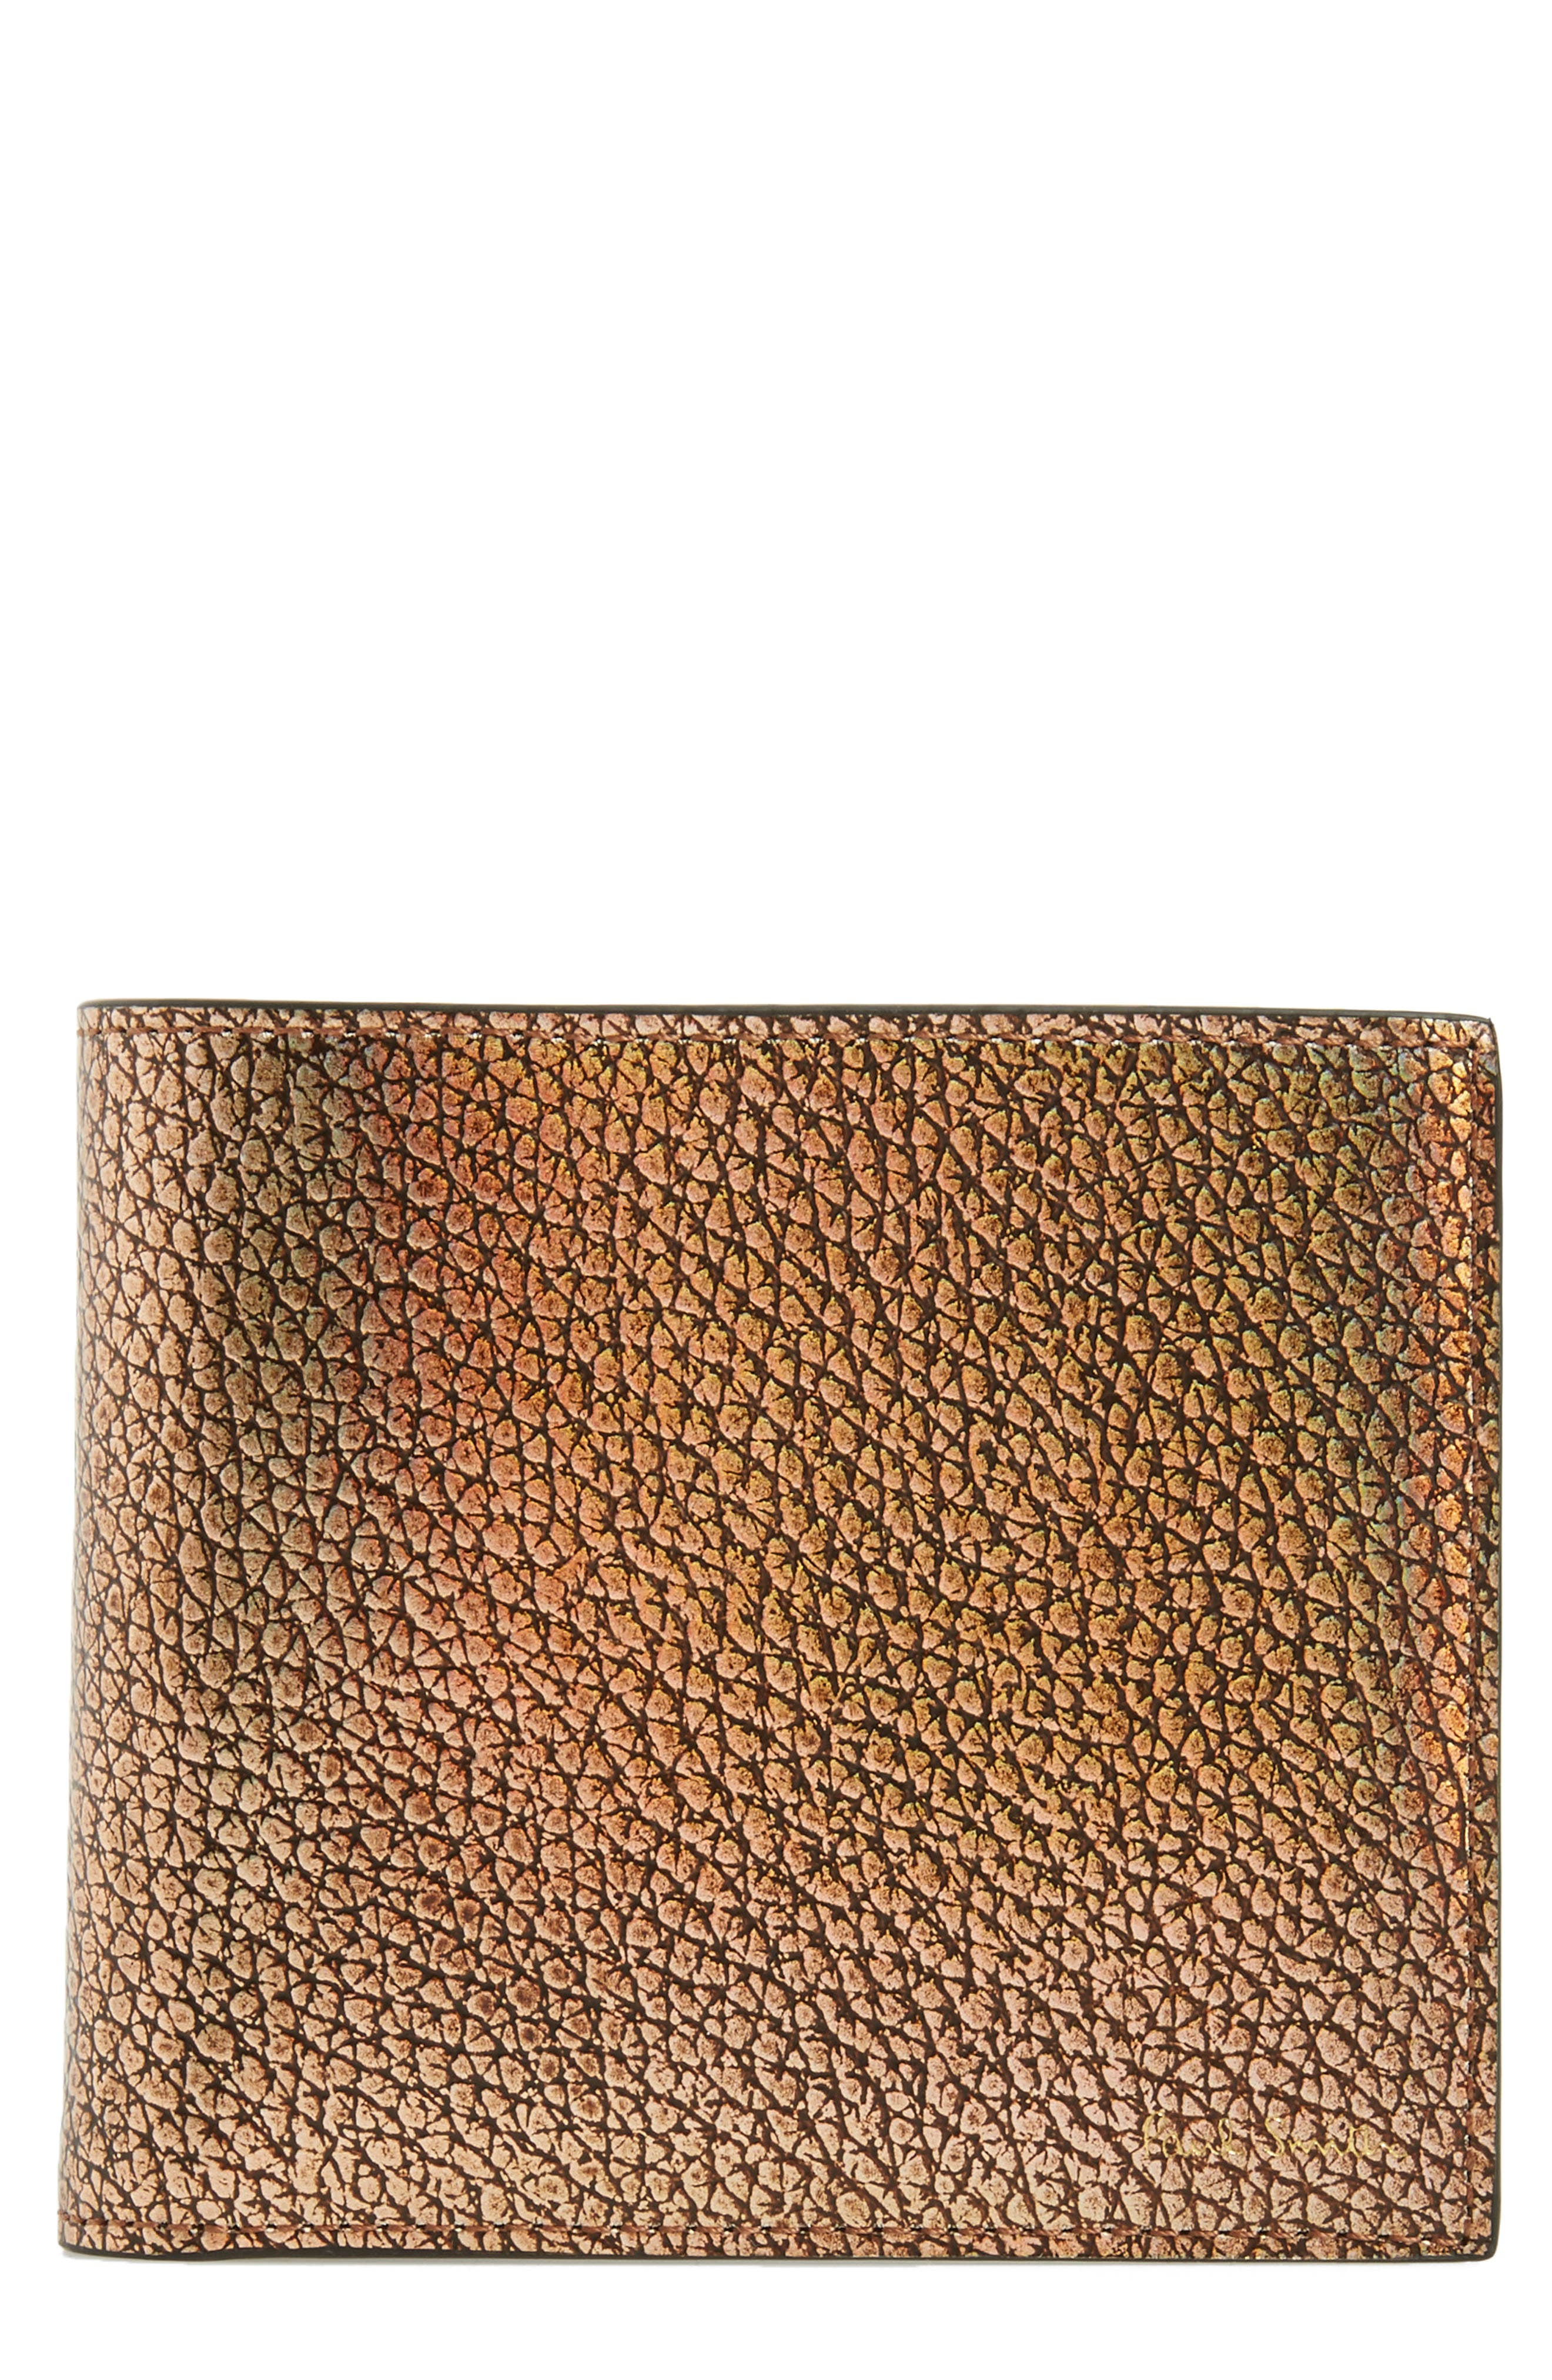 Paul Smith Metallic Leather Wallet